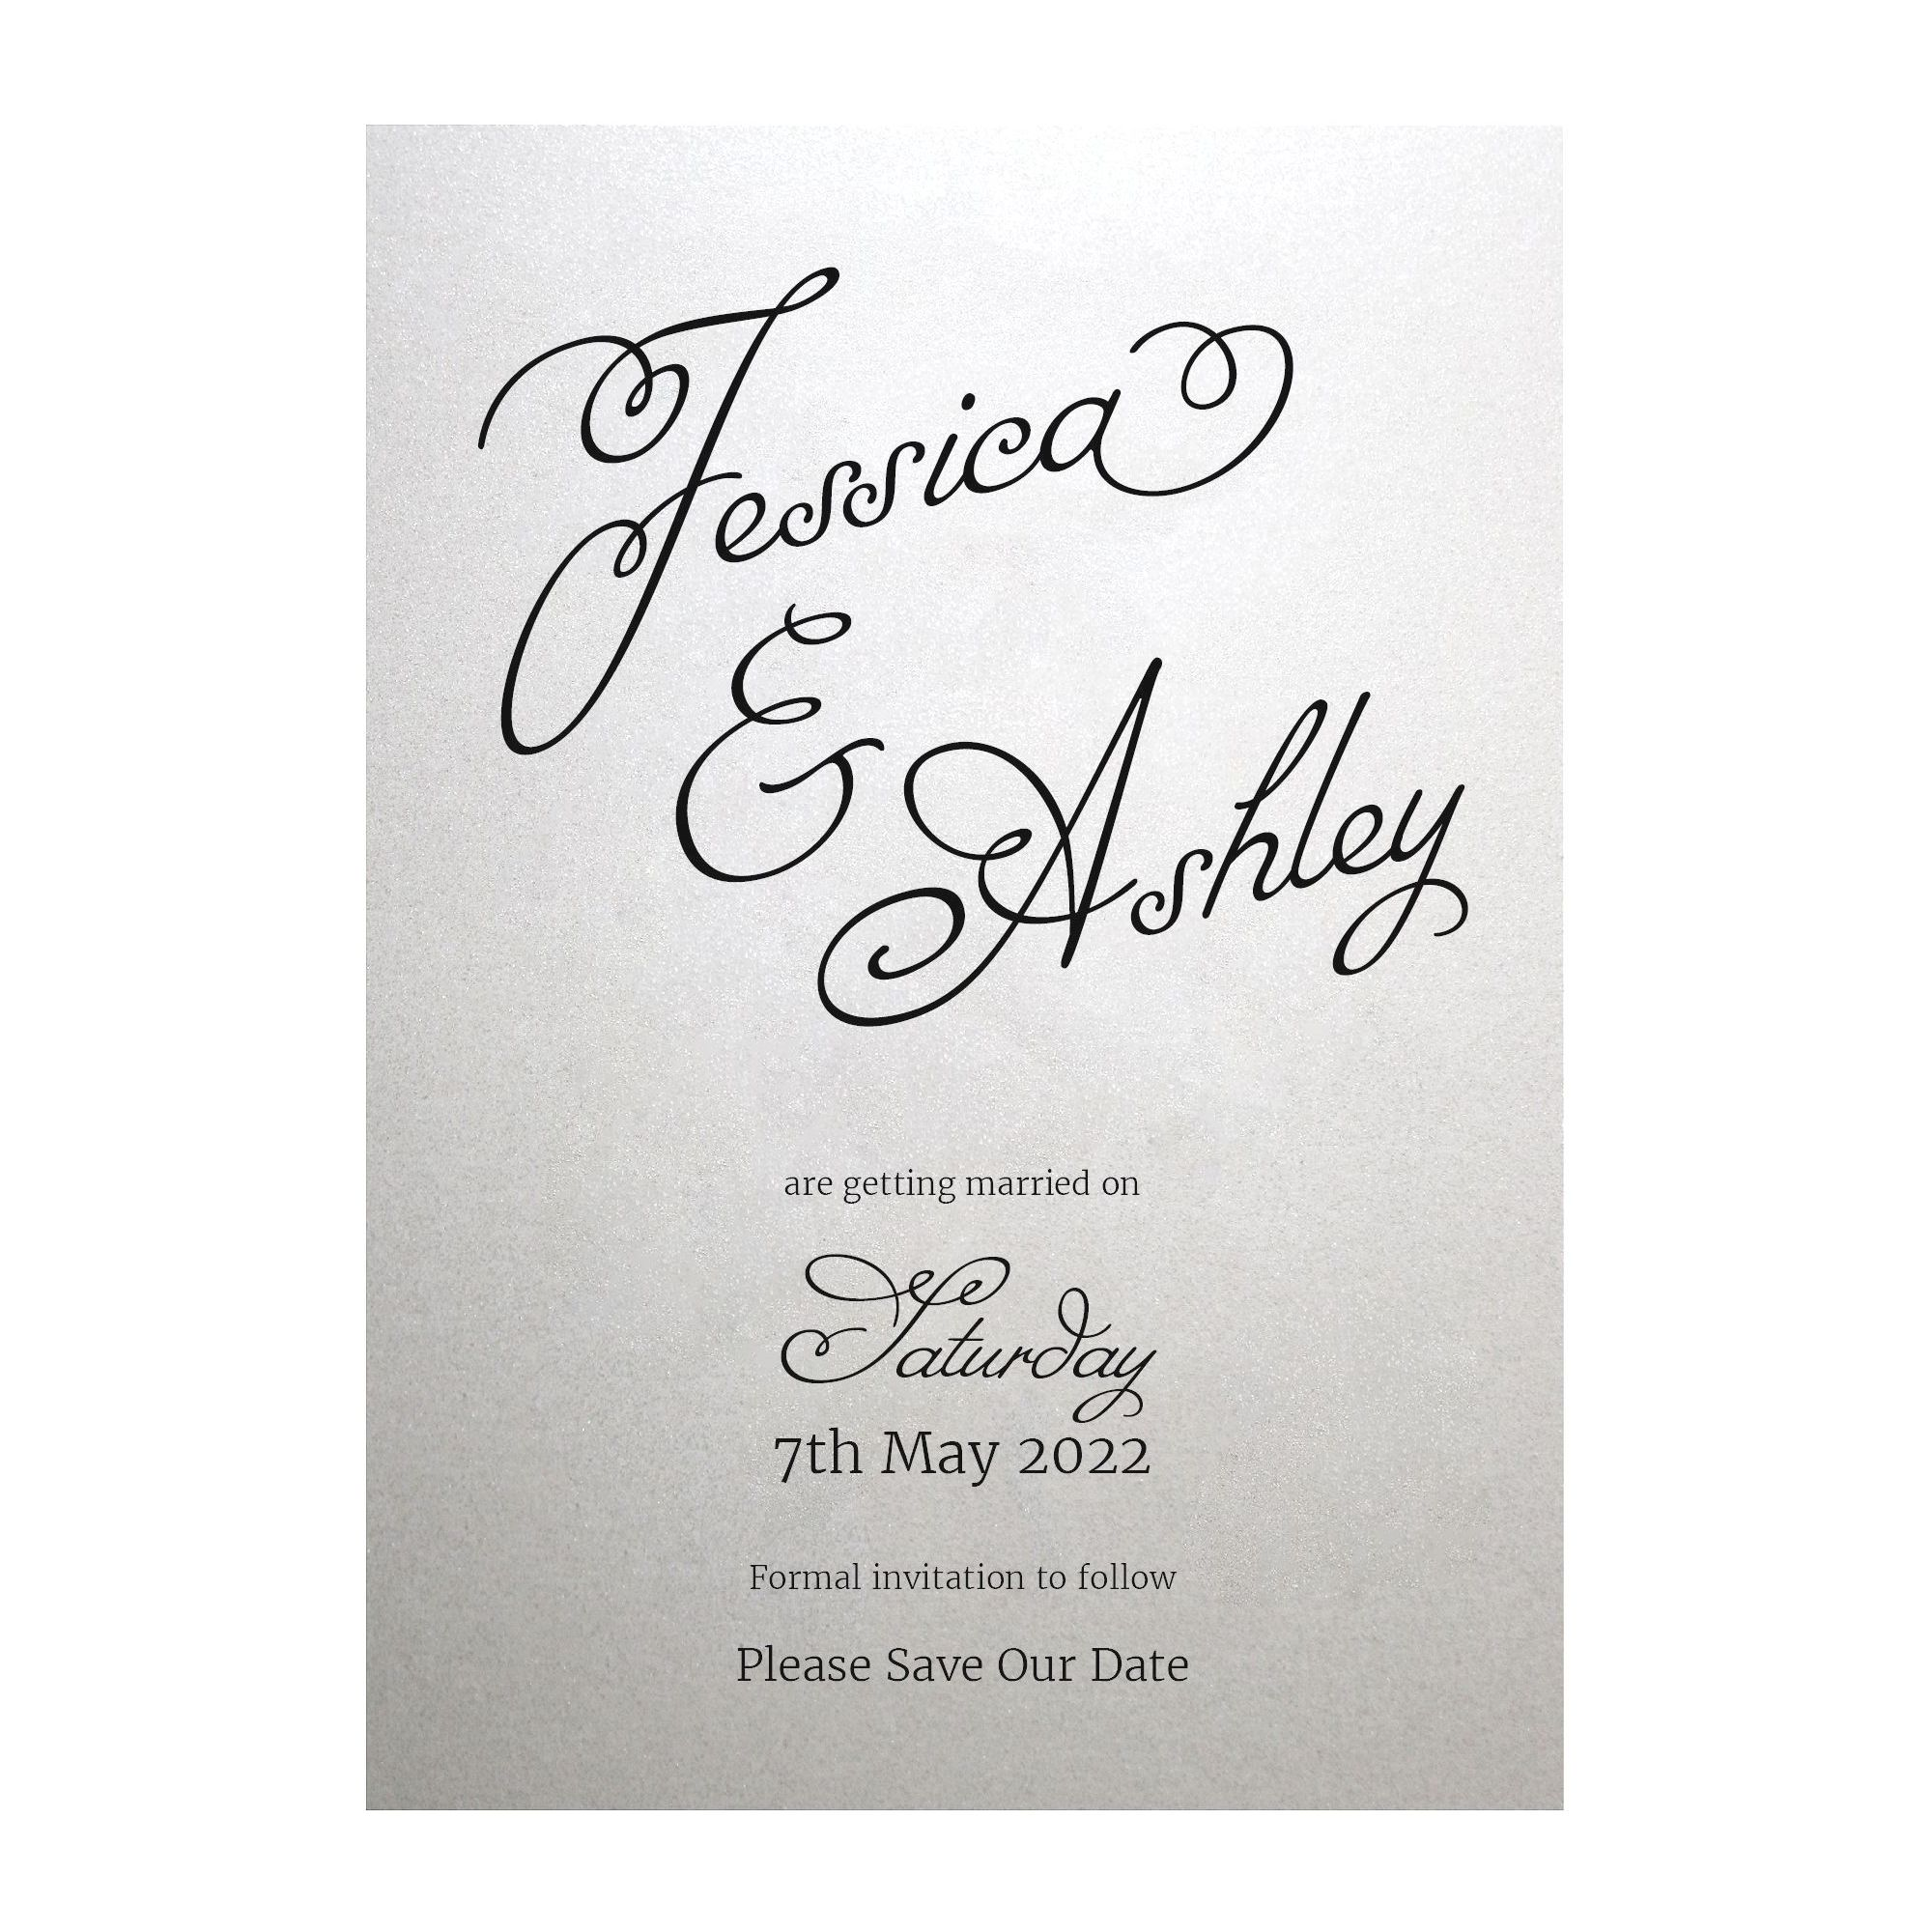 Shimmer Arctic White Classic Swirled Name Save the Date Cards